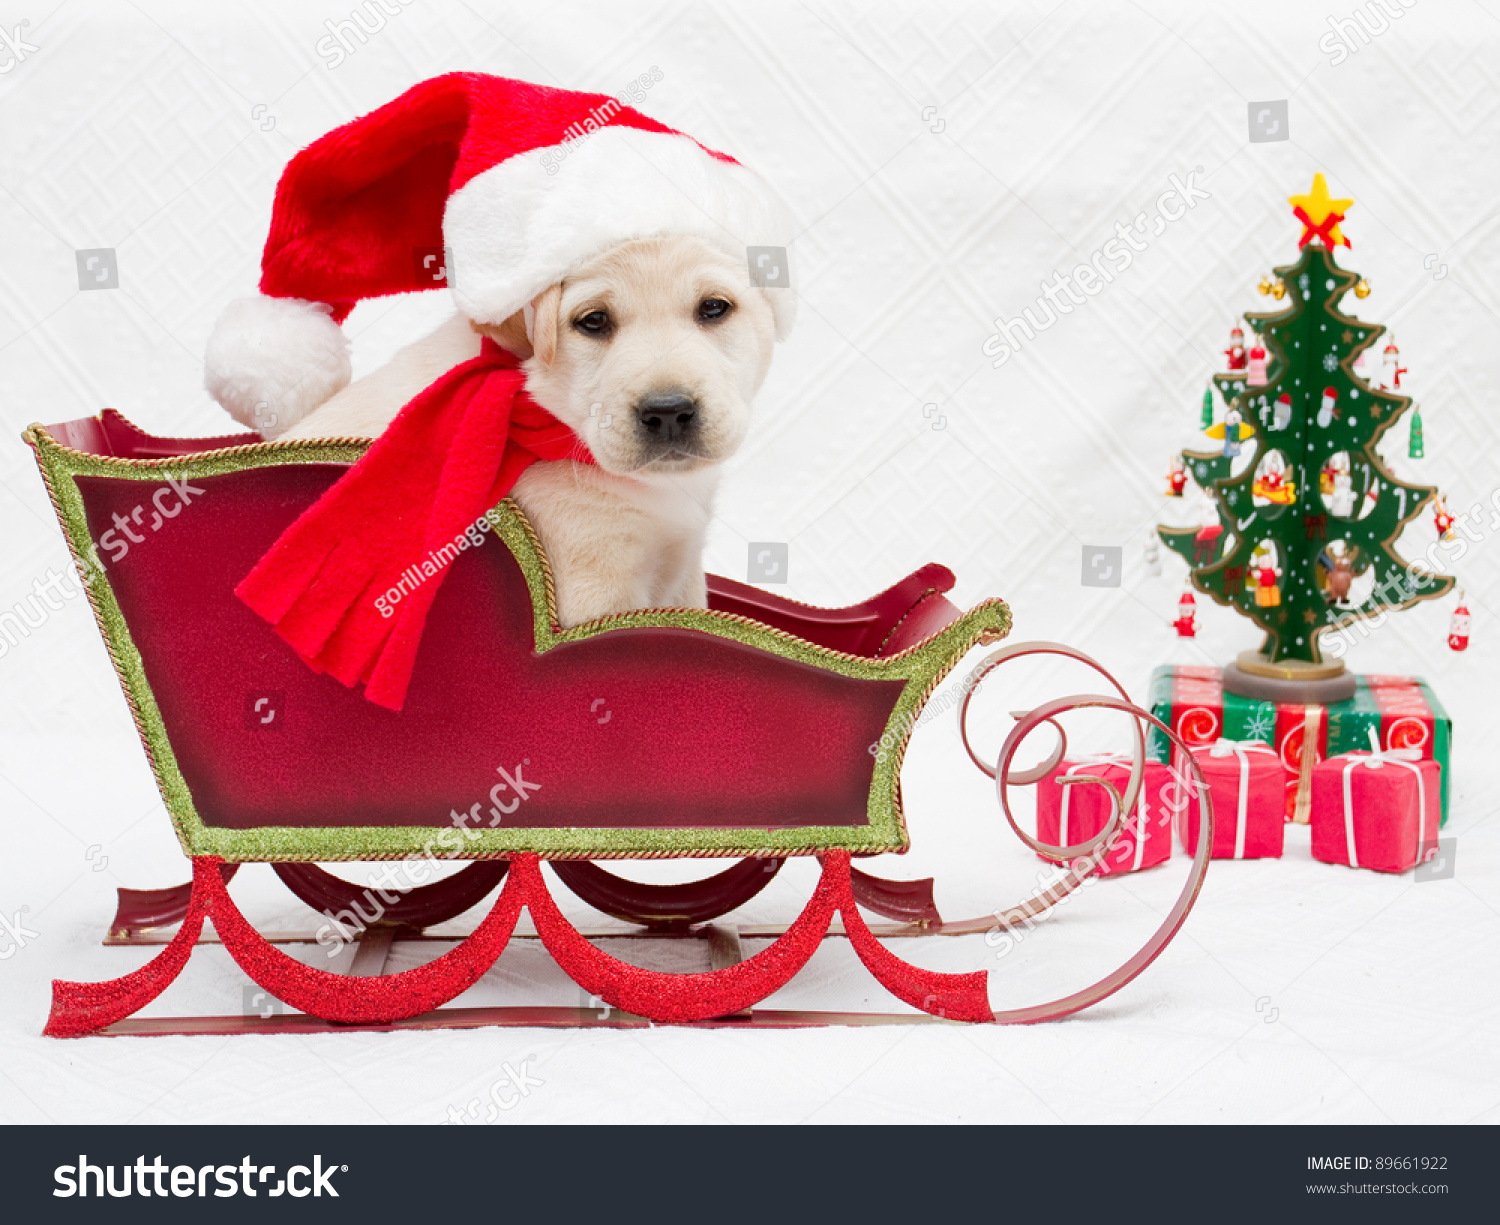 Merry Christmas Portrait Of Cute Labrador Puppy In